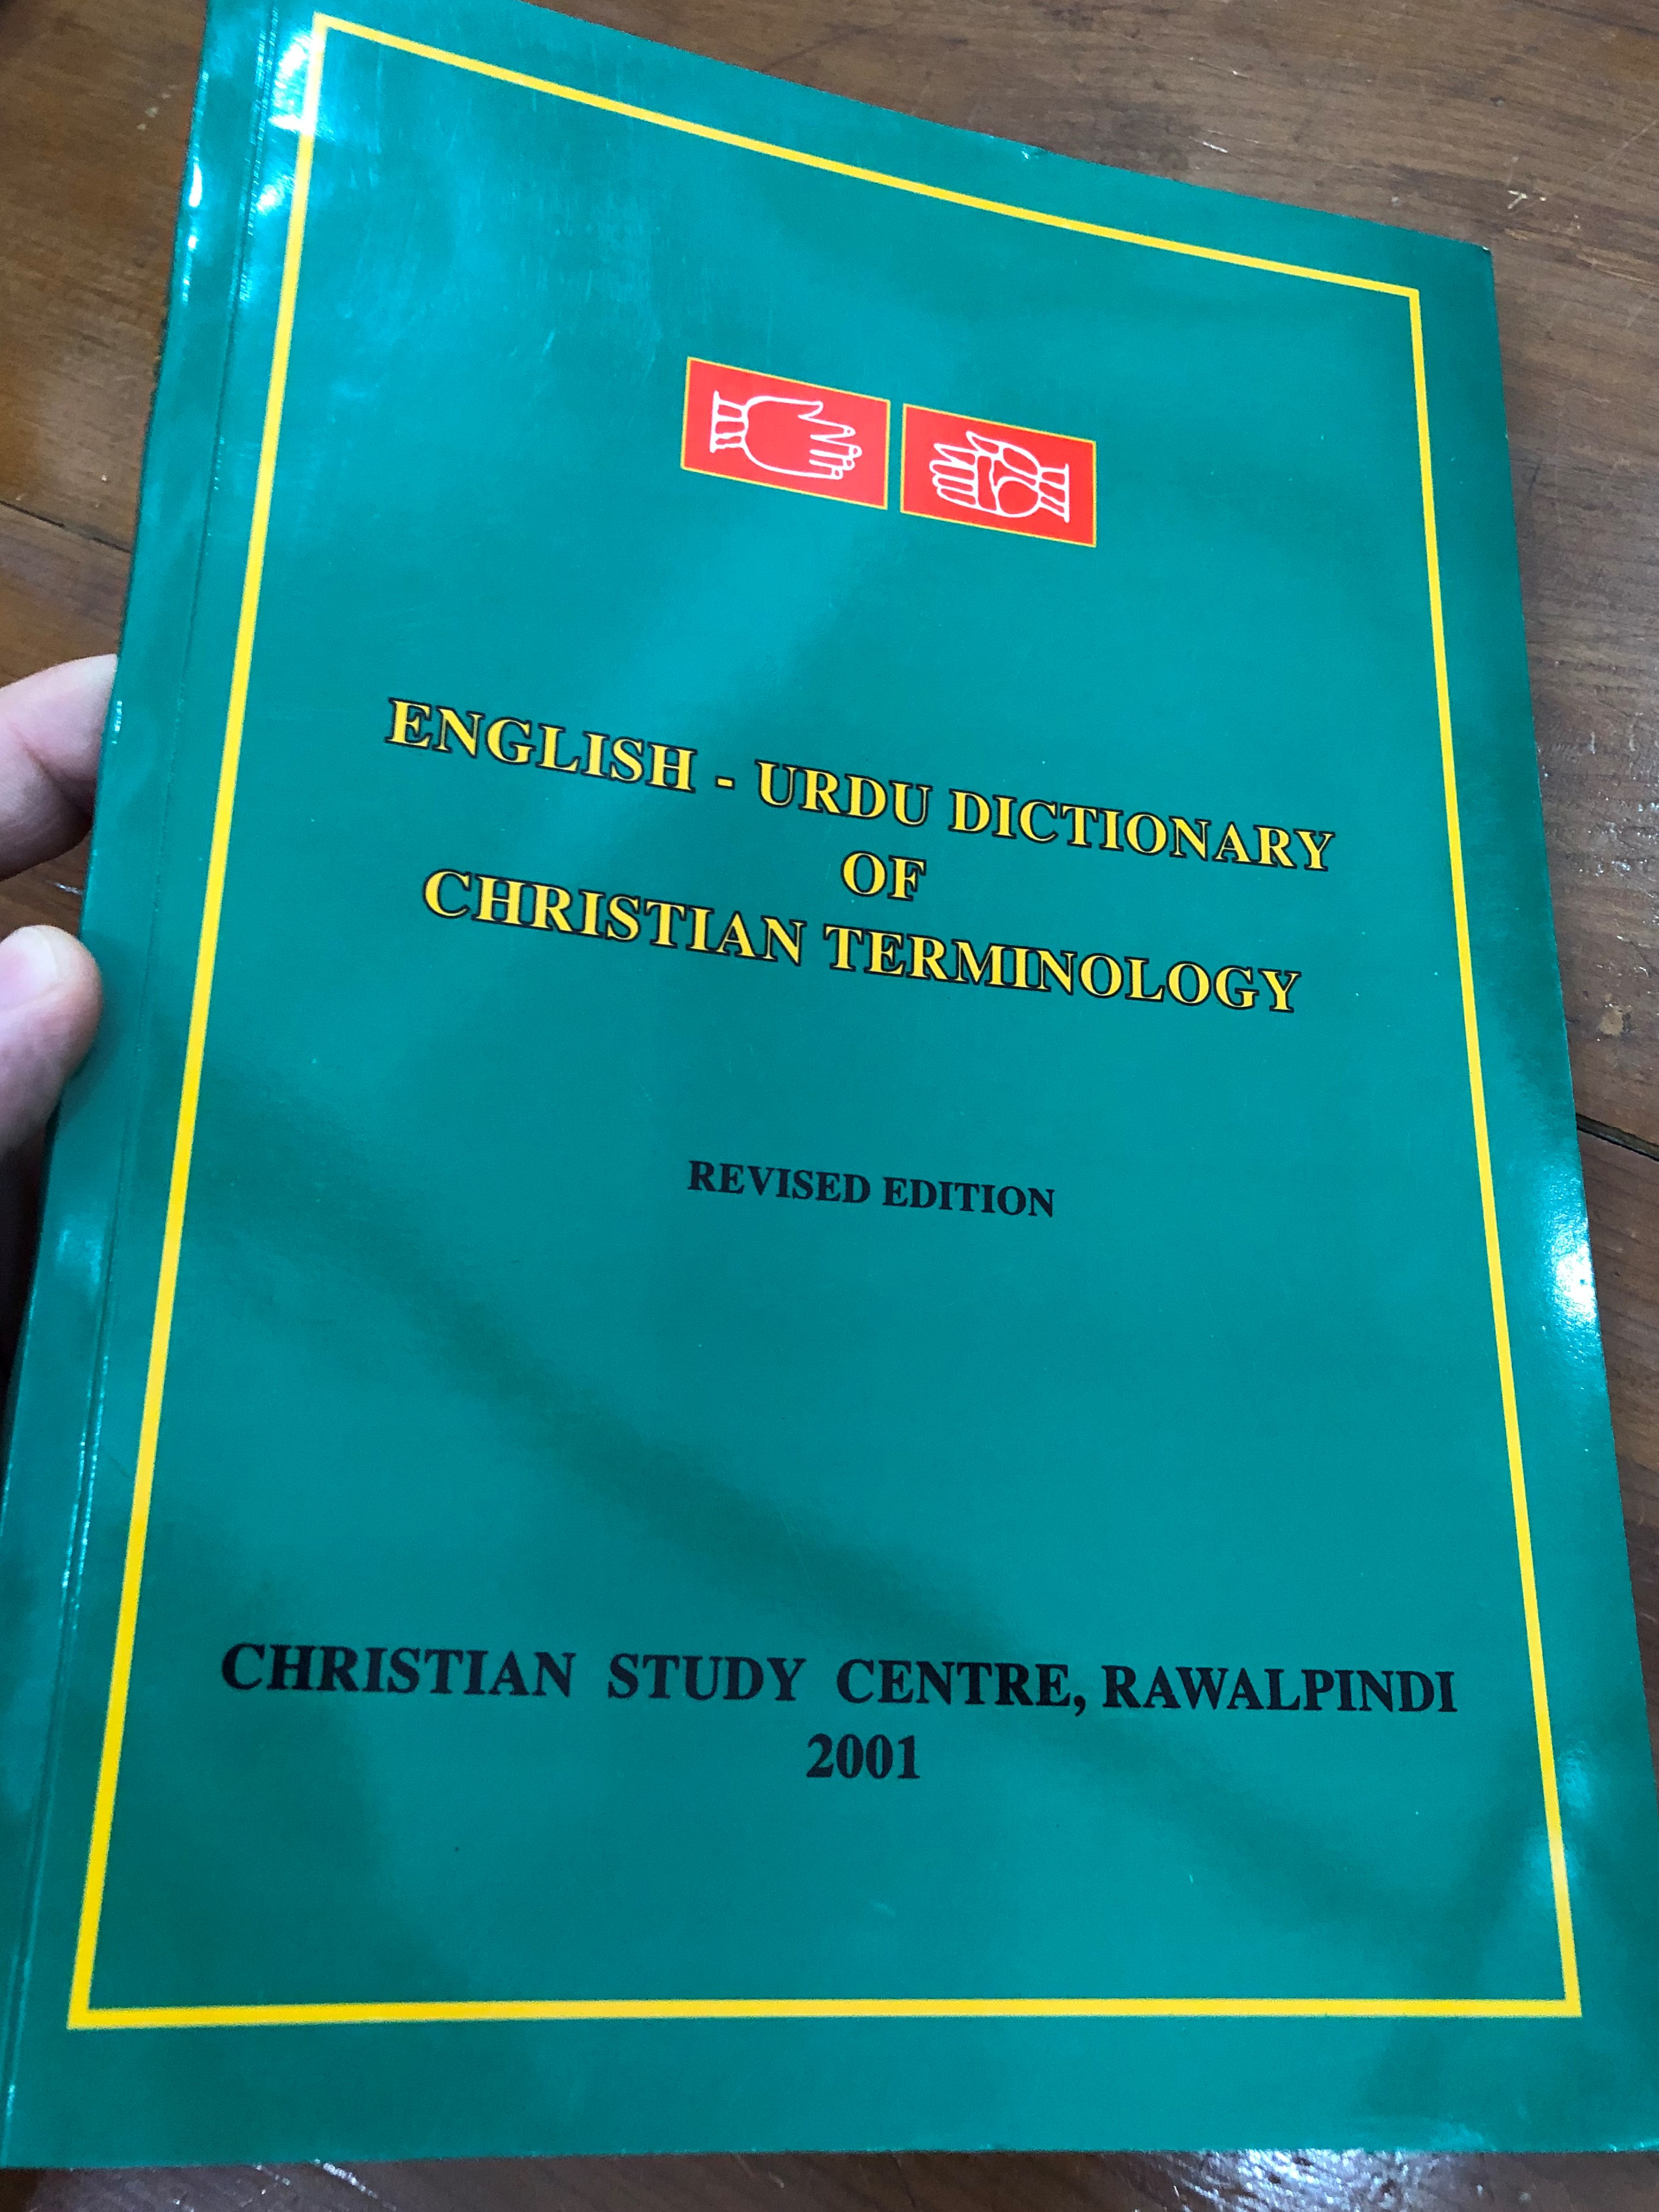 english-urdu-dictionary-of-christian-terminology-by-liberius-pieterse-a.o-revised-edition-2001-christian-study-centre-pakistan-1-.jpg